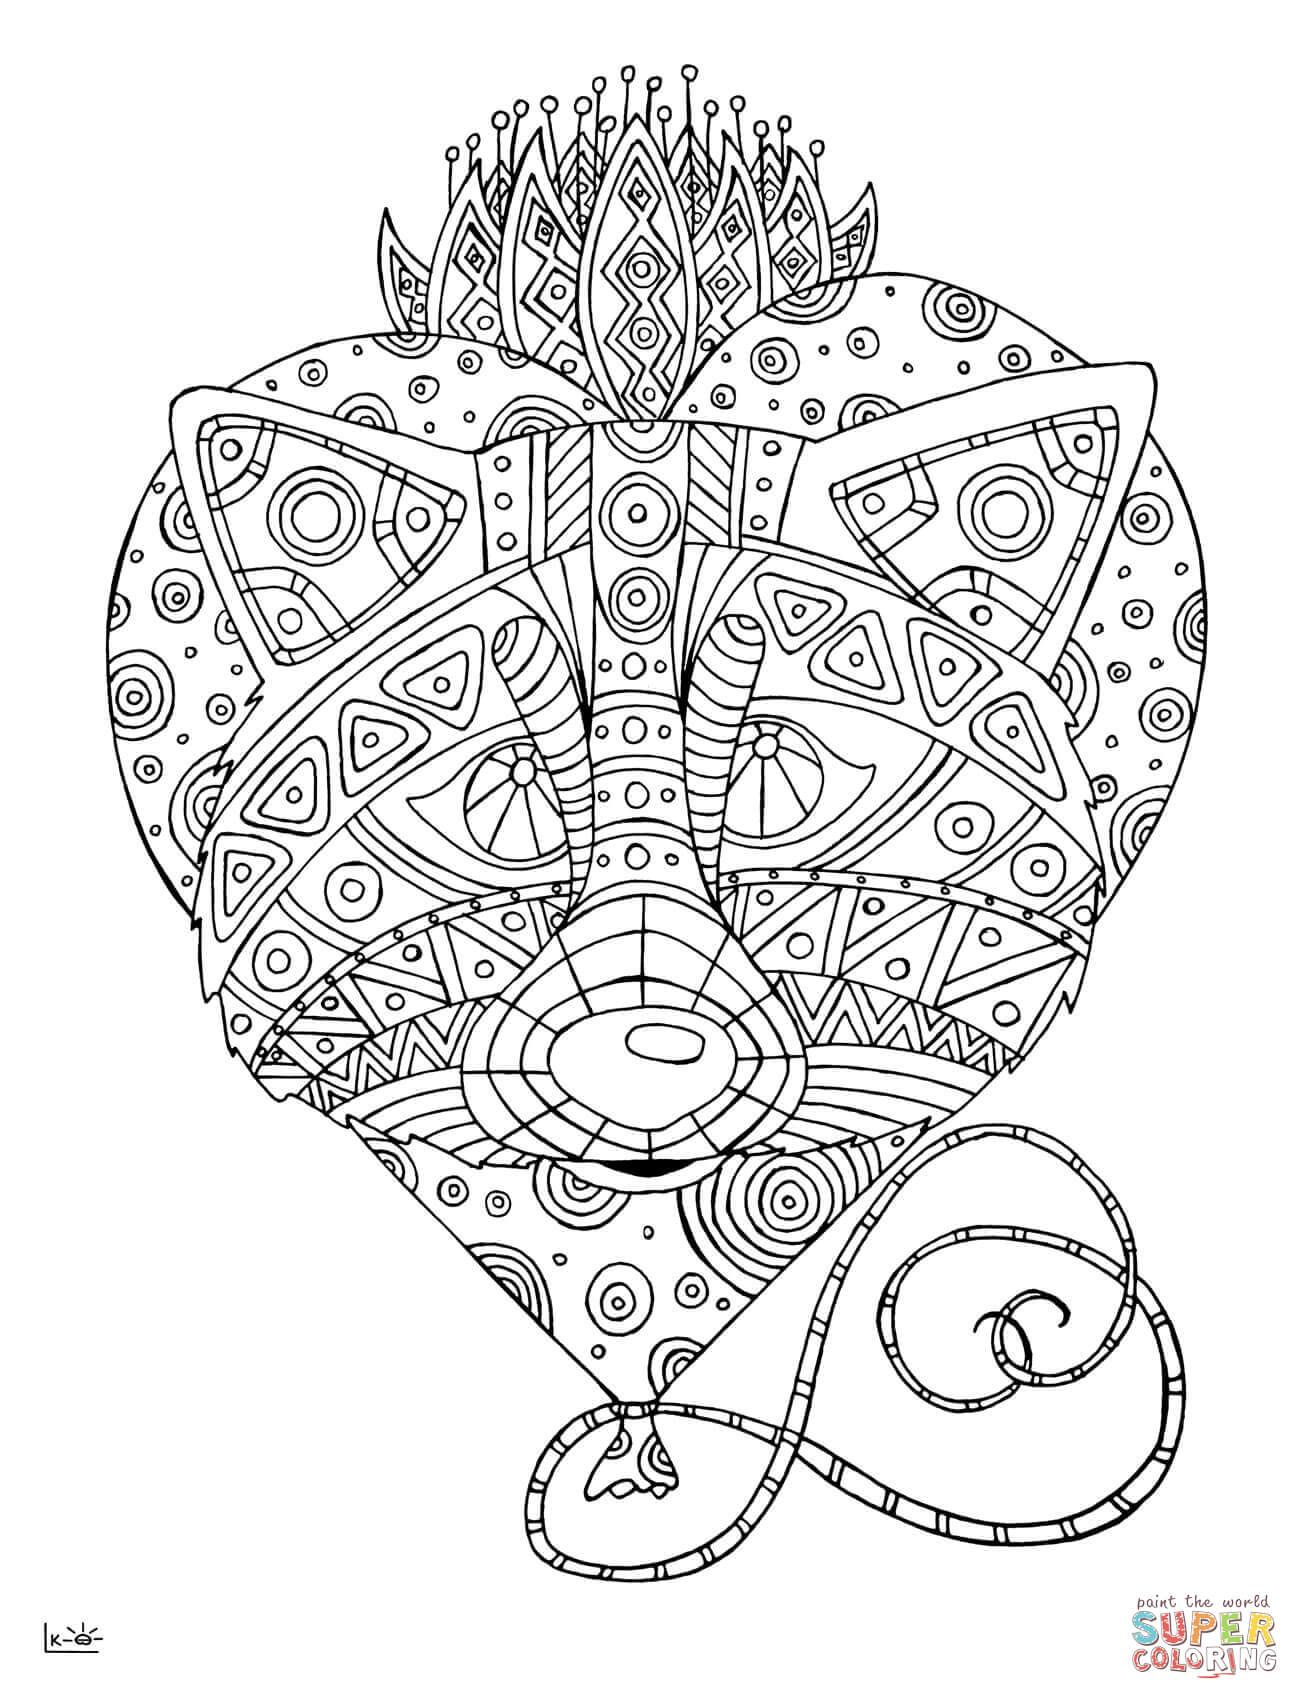 Raccoon With Tribal Pattern Super Coloring Pattern Coloring Pages Coloring Pages Animal Coloring Pages [ 1700 x 1300 Pixel ]